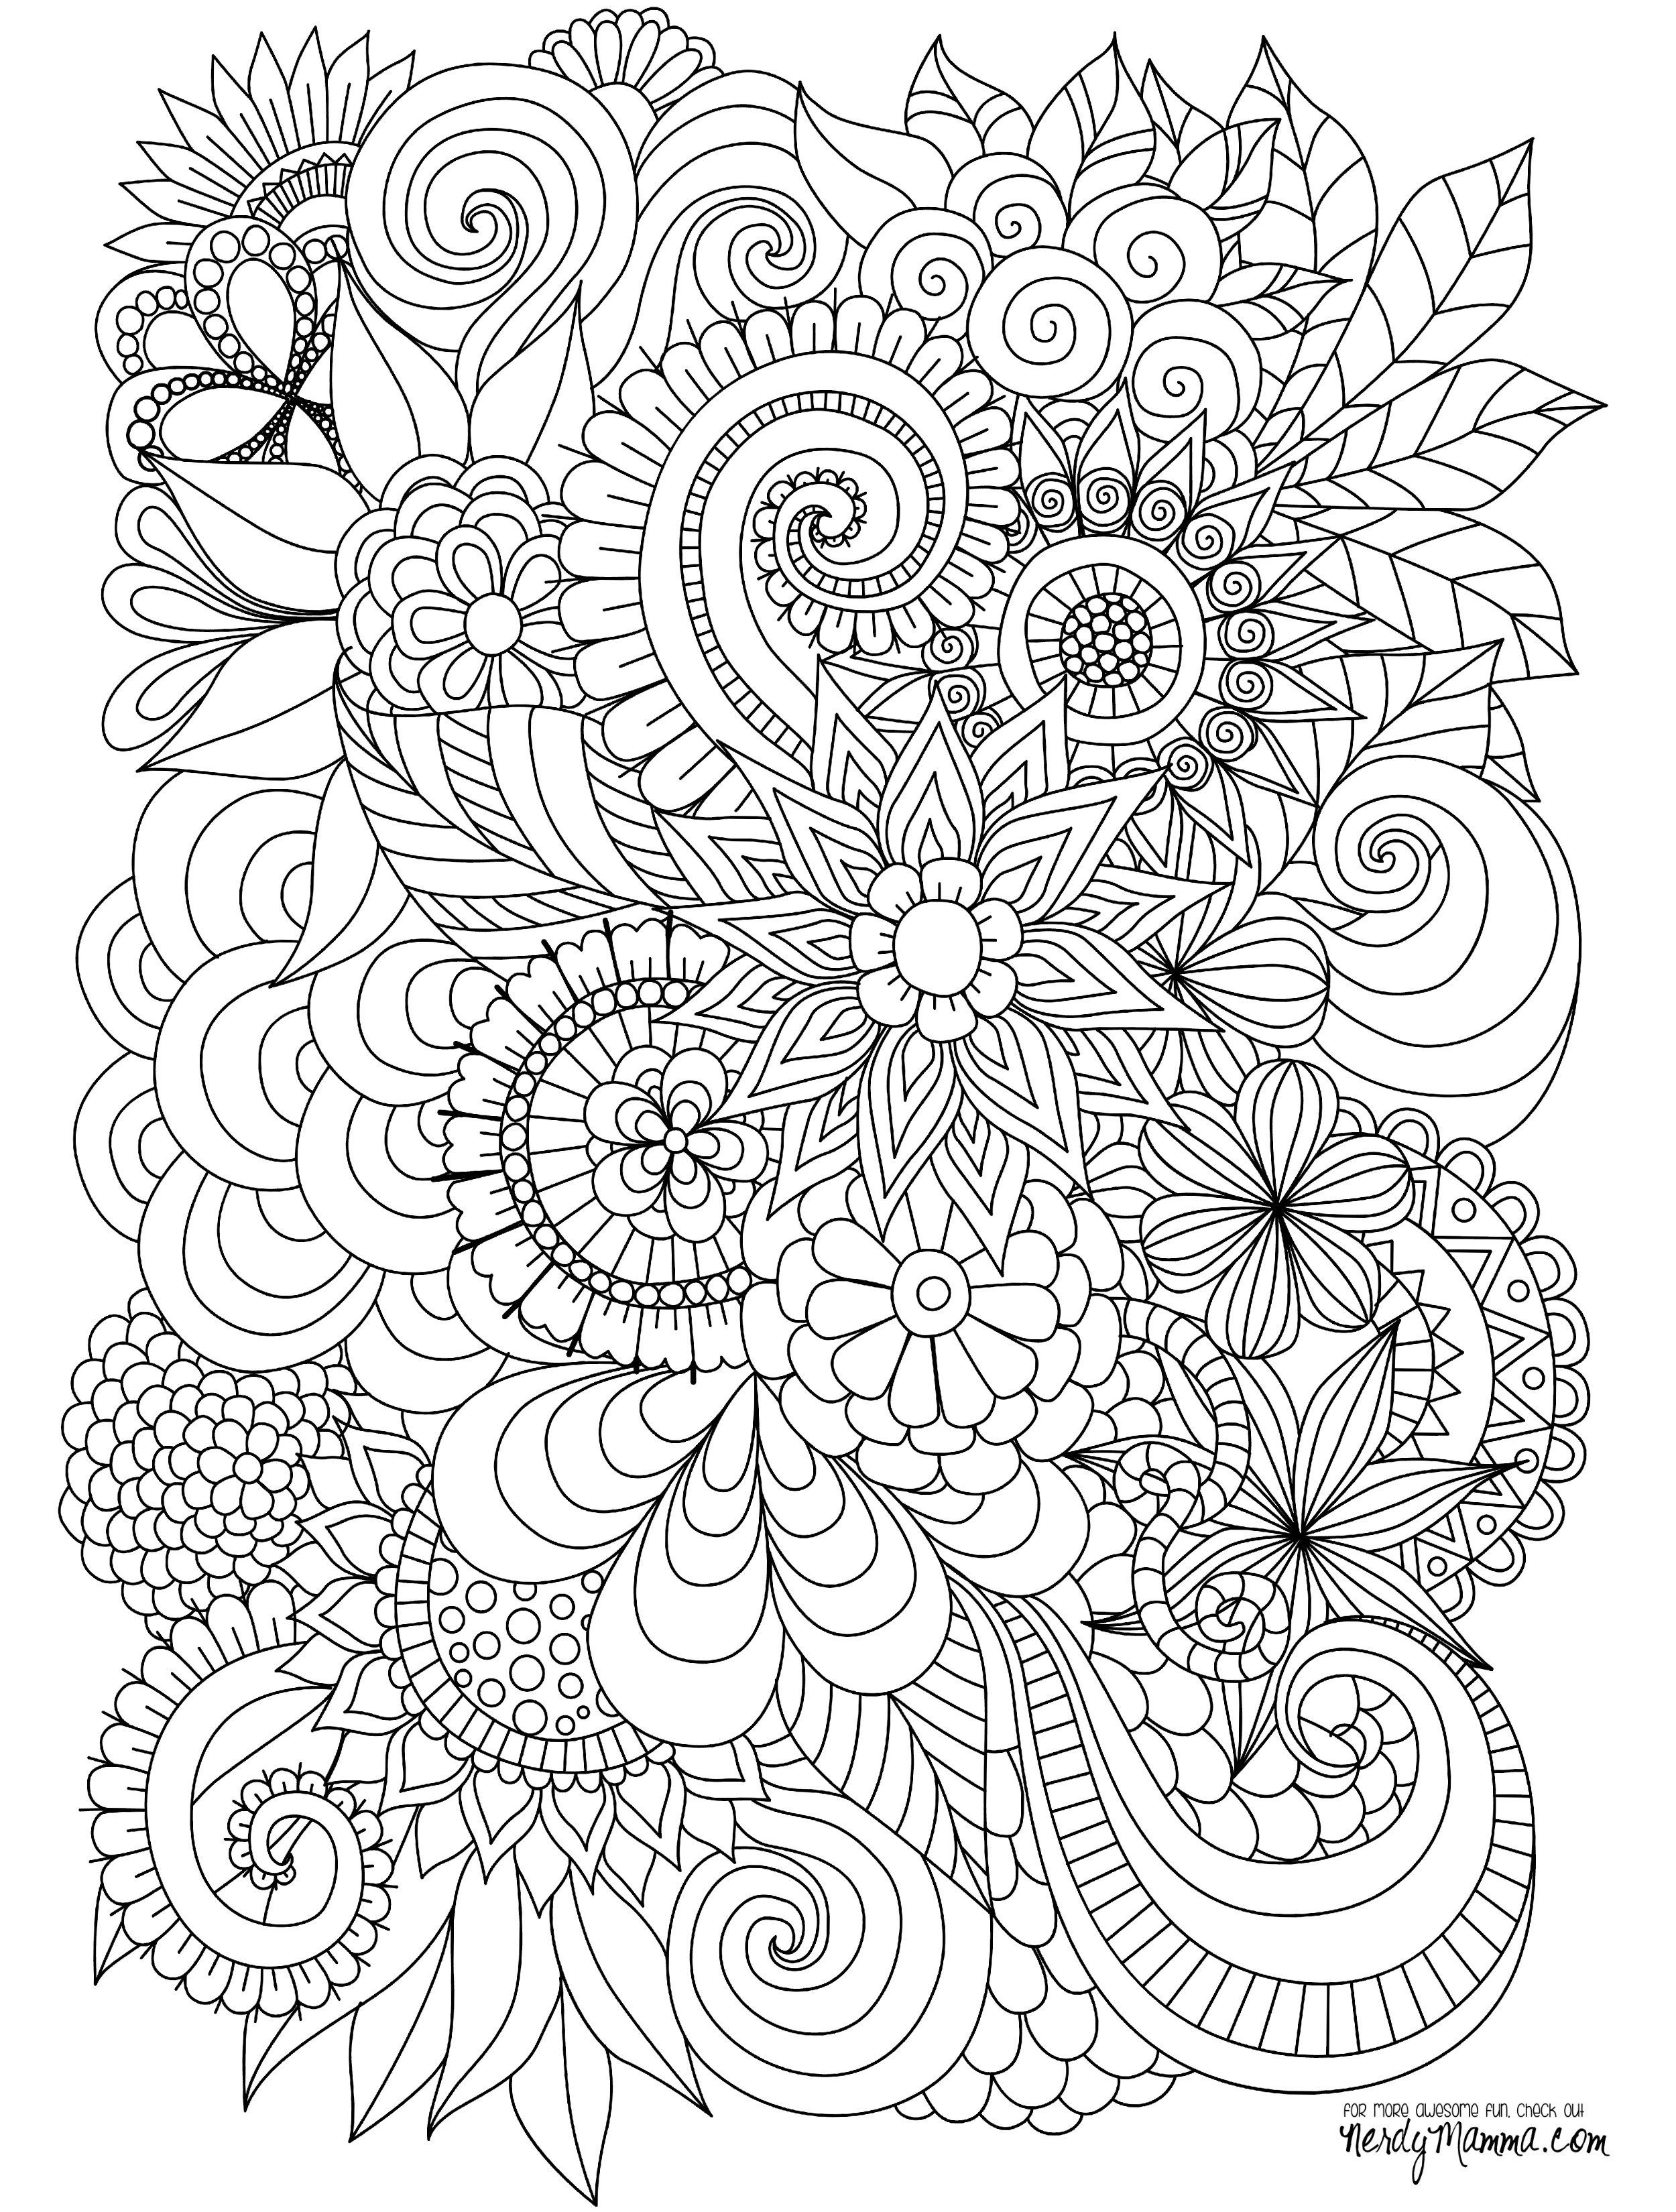 Advanced Animal Coloring Pages  Printable 3g - Free For Children